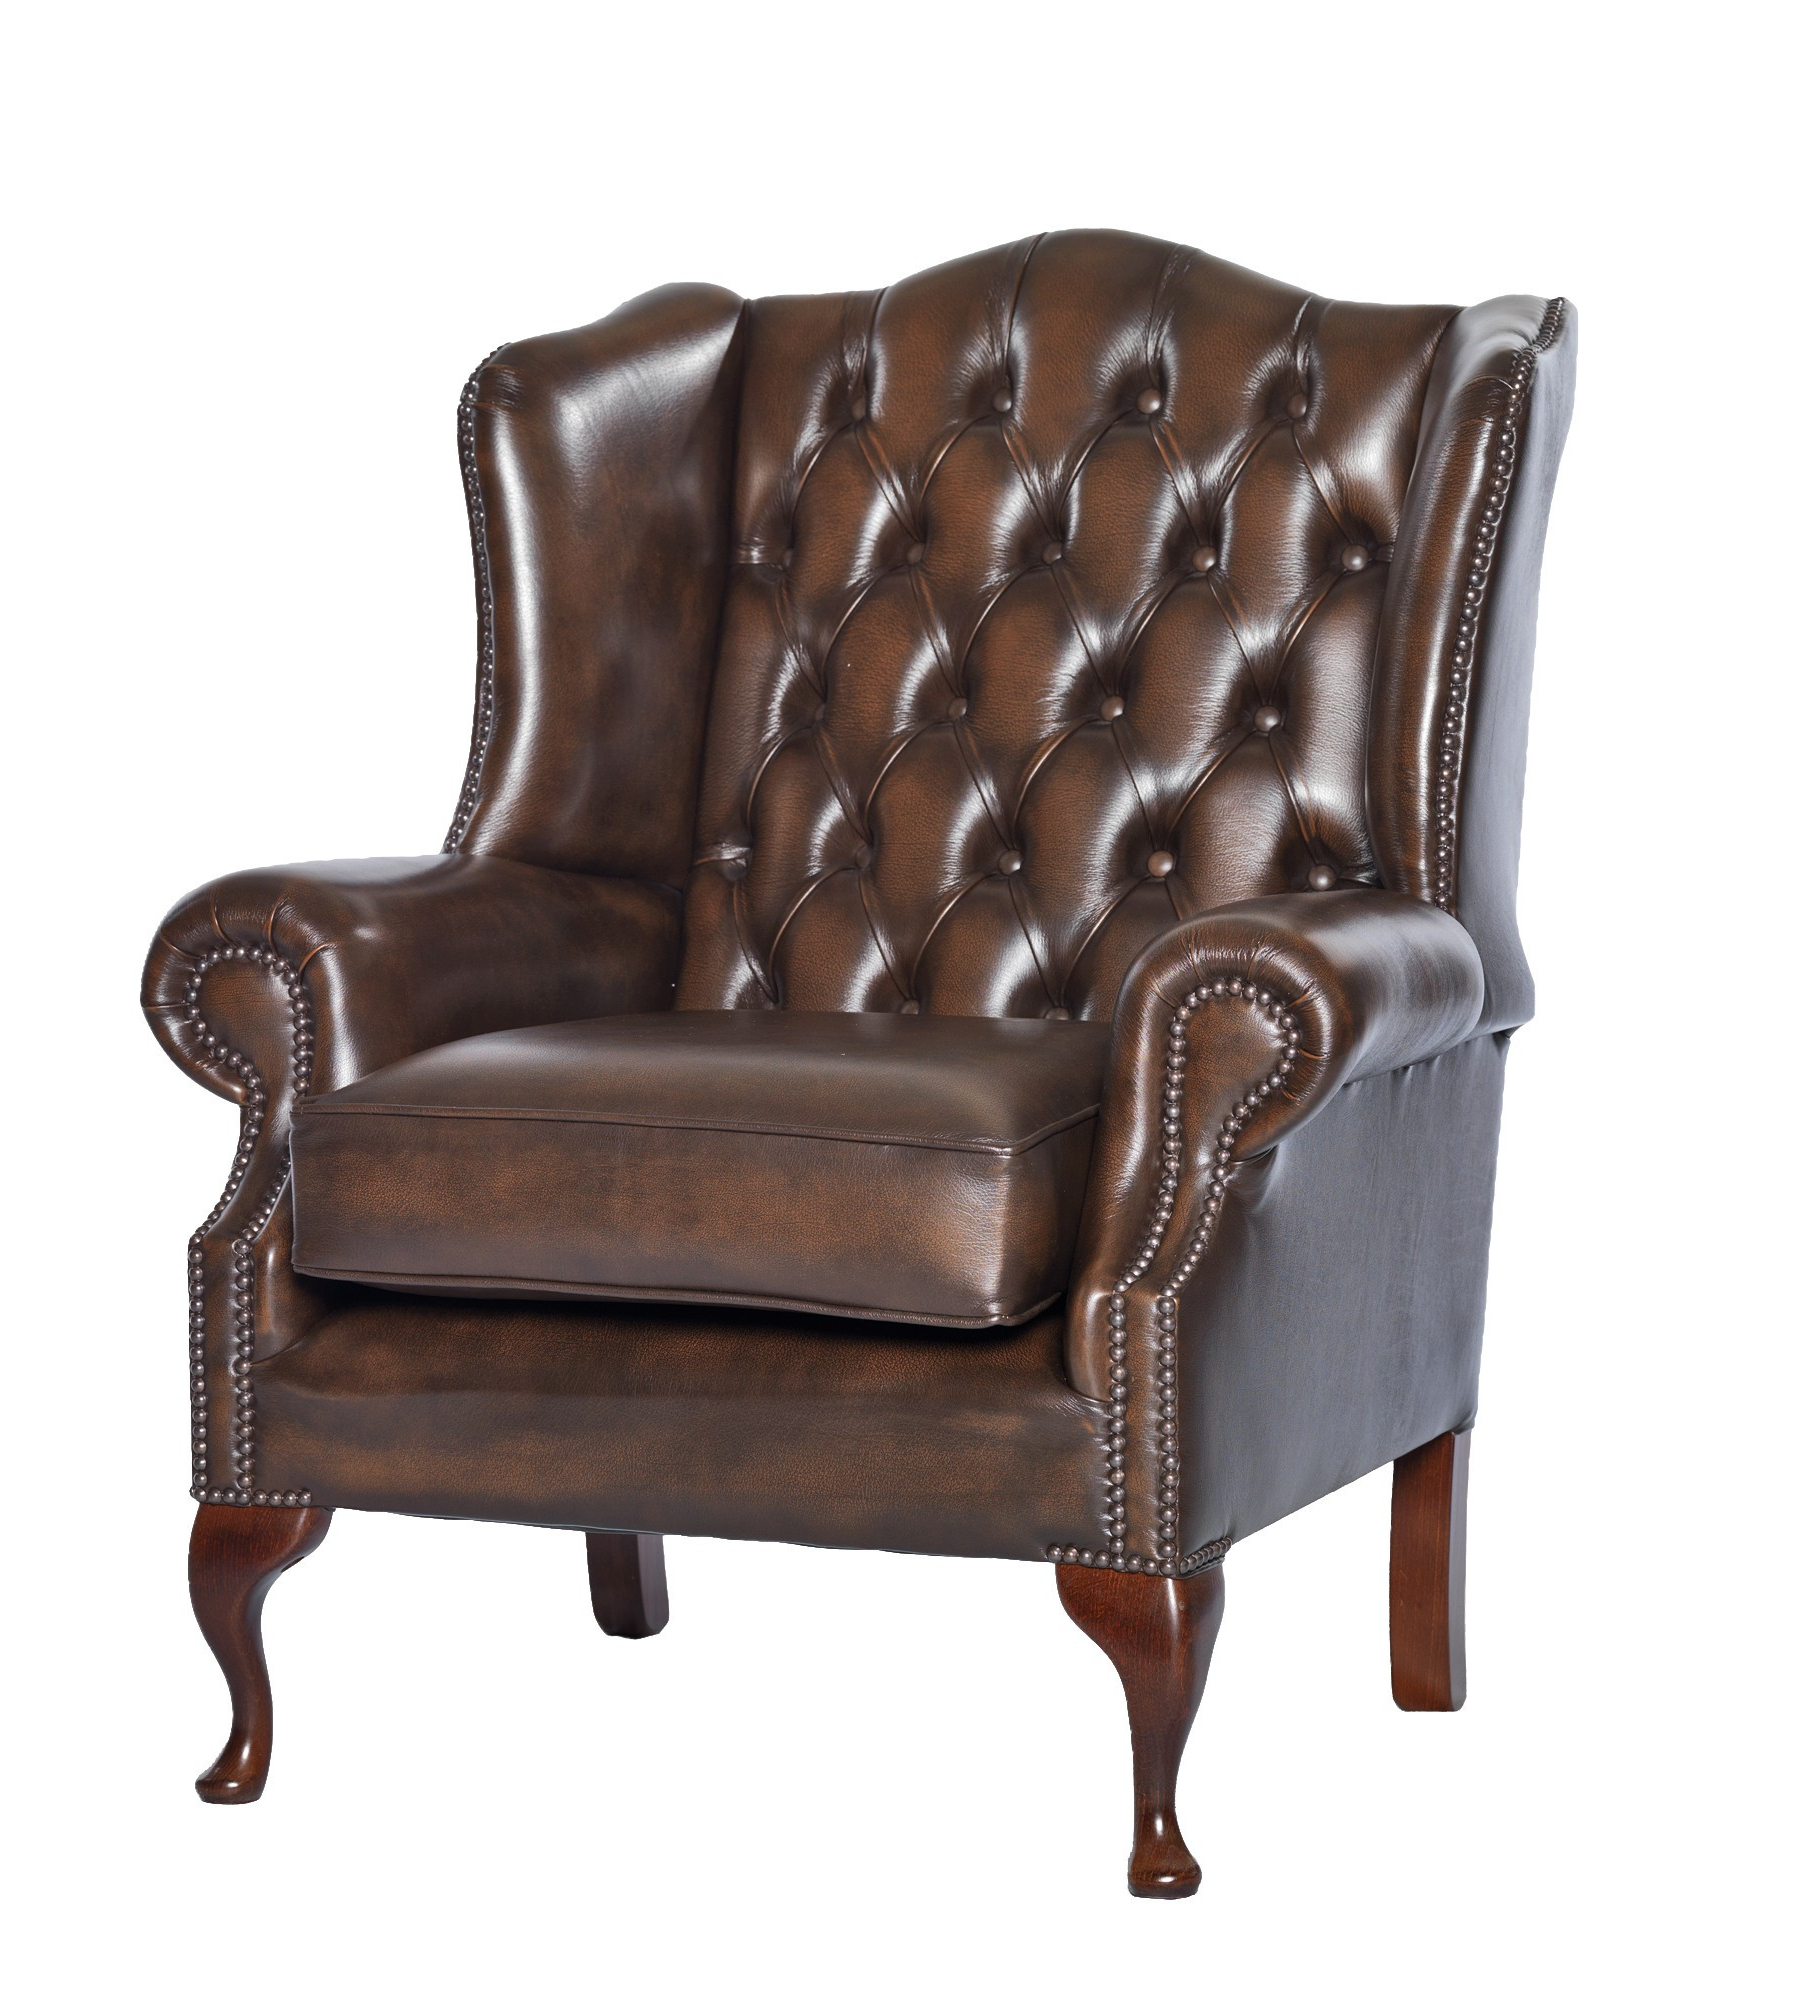 Chesterfield Sofa And Chairs Within Preferred Queen Anne Leather Chesterfield Sofa Or Chair – Leather Sofas And Chairs (Gallery 5 of 20)